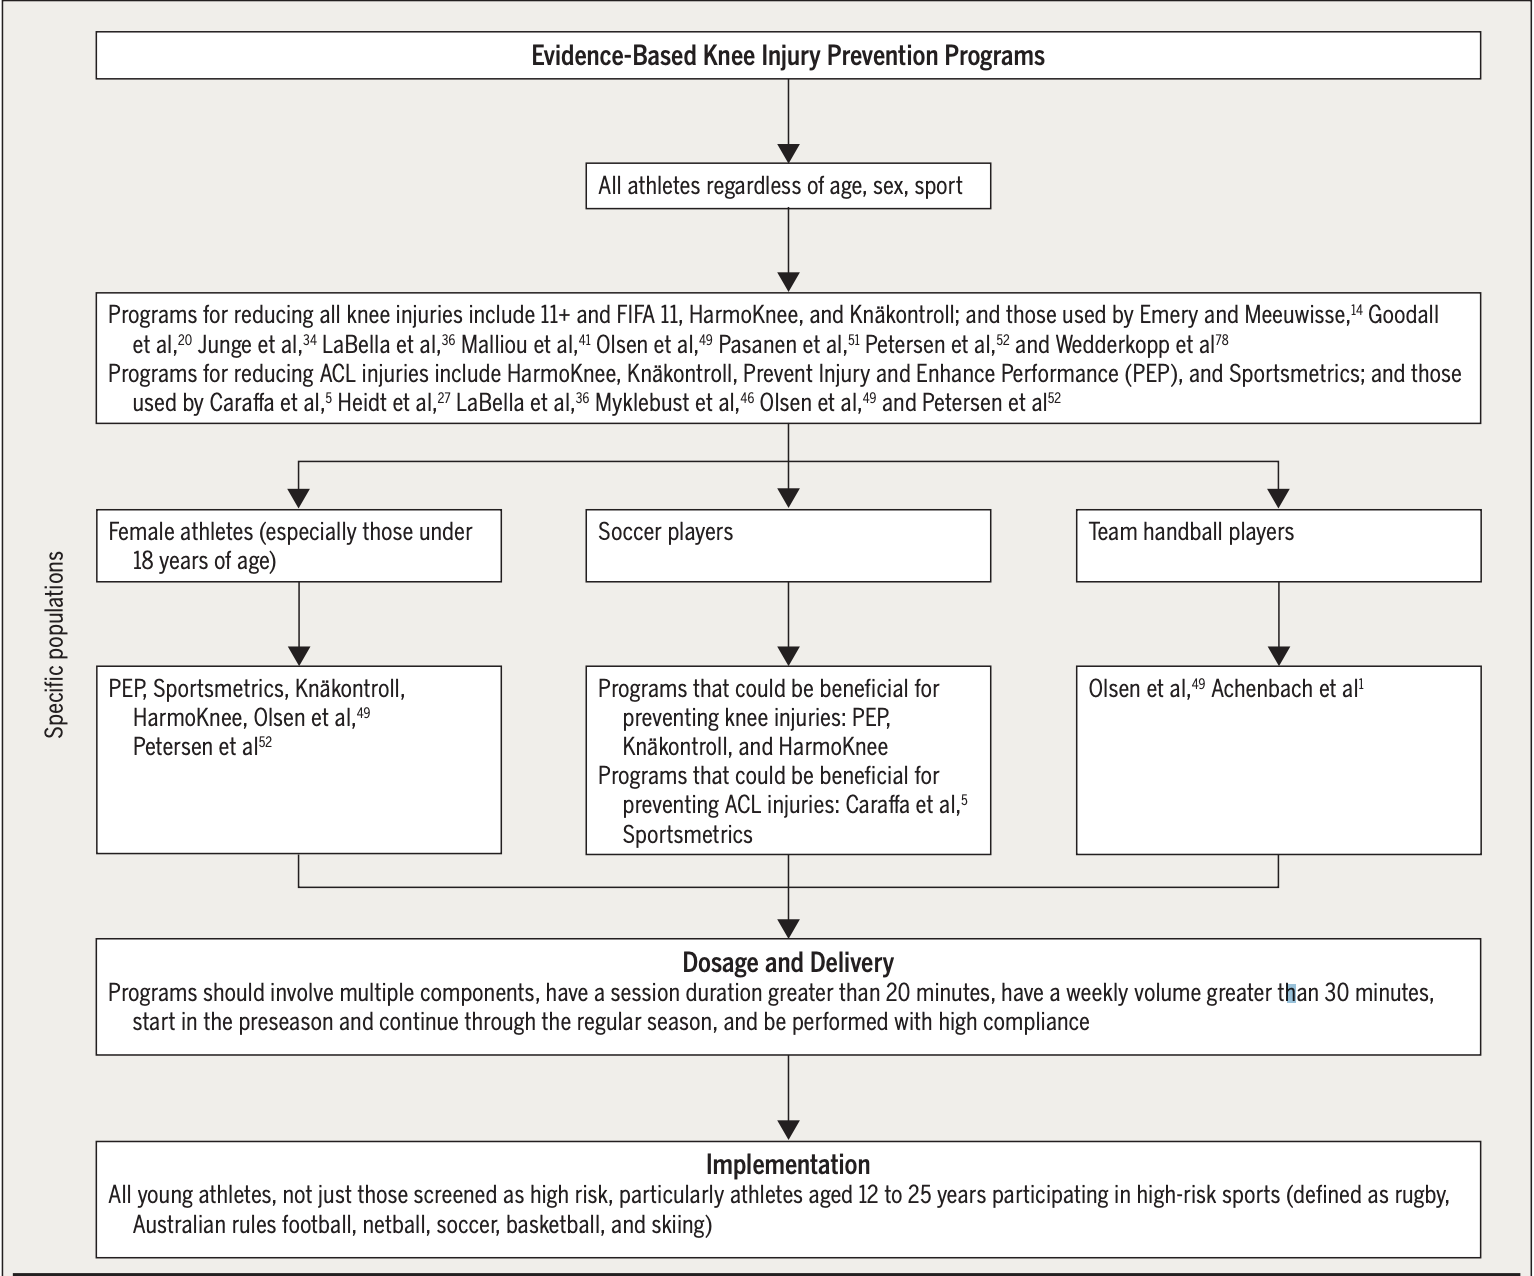 Image from CPG decision making tree  https://www.orthopt.org/uploads/content_files/files/Knee%20Injury%20Decision%20Tree%20Figures%281%29.pdf